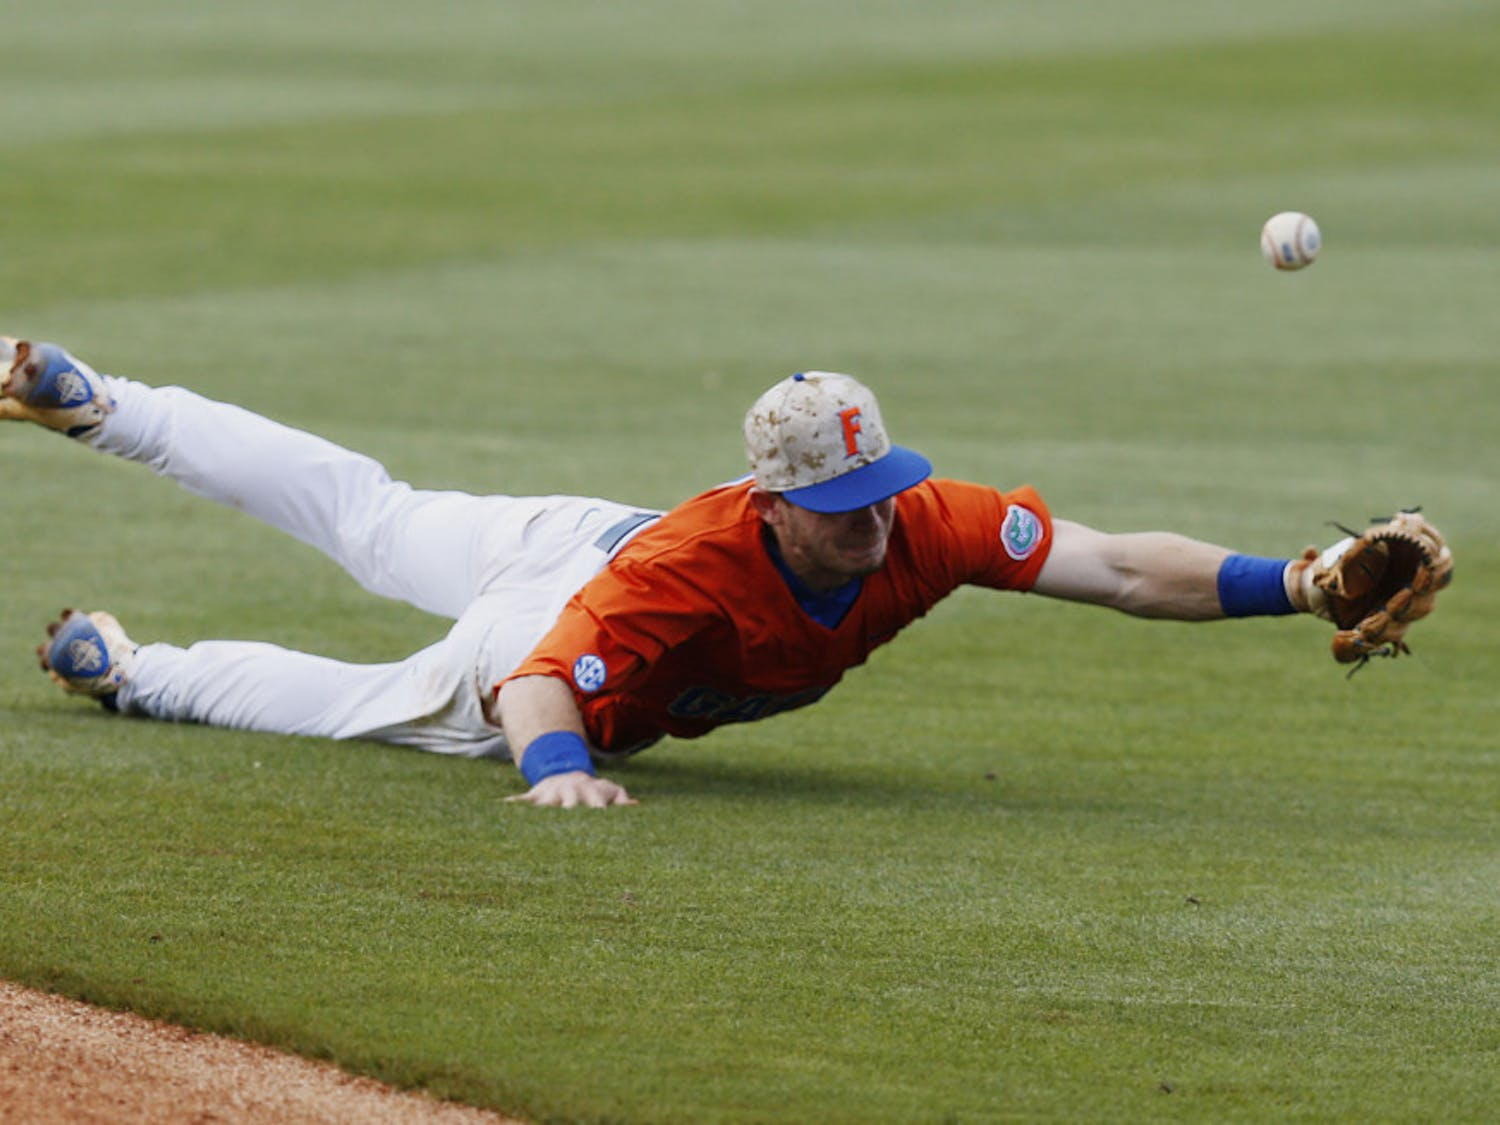 Florida's Deacon Liput dives for the ball and misses it in the seventh inning against Texas A&M in a Southeastern Conference NCAA college baseball championship game at the Hoover Met, Sunday, May 29, 2016, in Hoover, Ala. Texas A&M won 12-5. (AP Photo/Brynn Anderson)